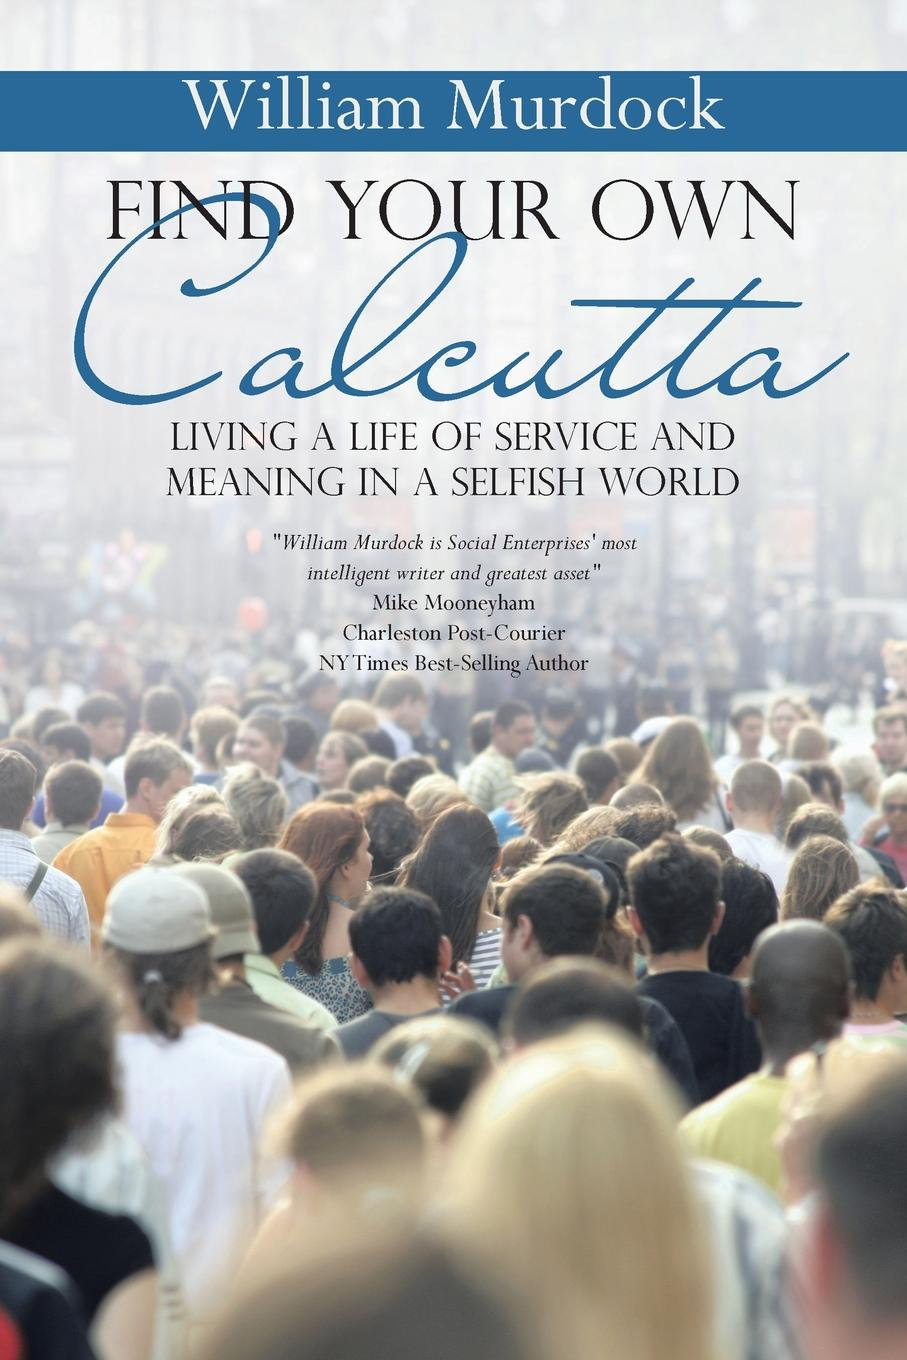 William Murdock Find Your Own Calcutta. Living a Life of Service and Meaning in a Selfish World becoming others